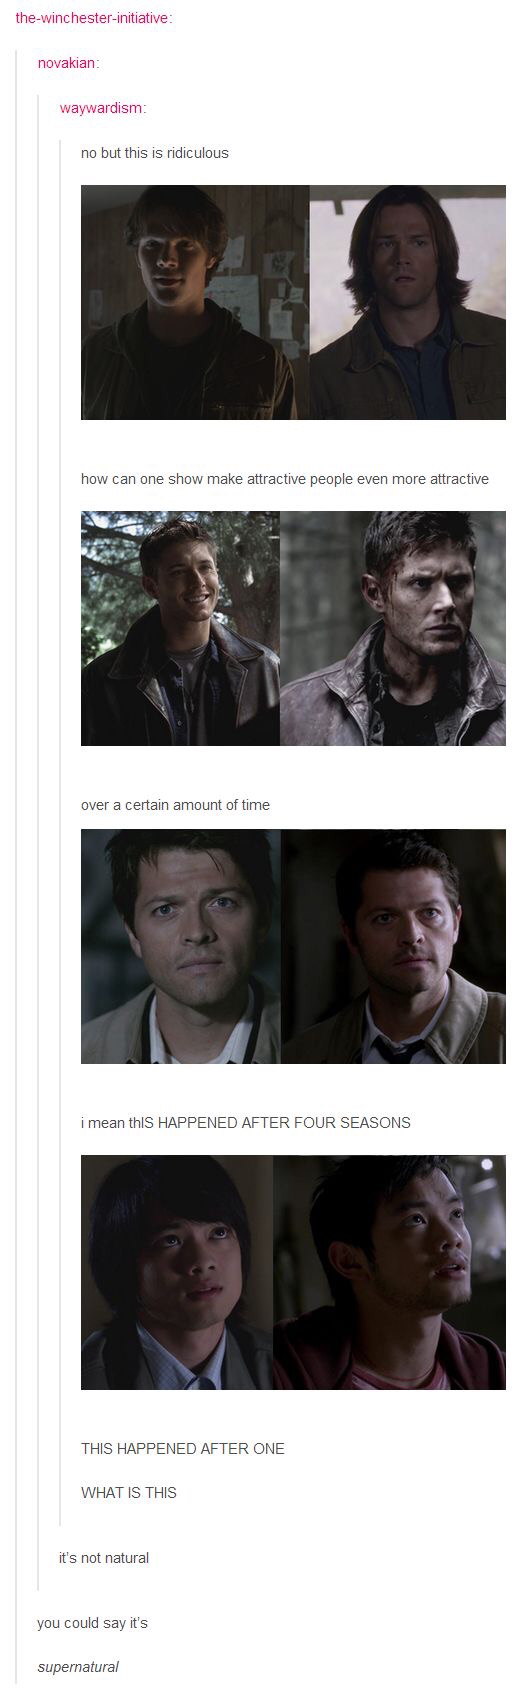 How can a show make attractive people even more attractive? 😂😂😂